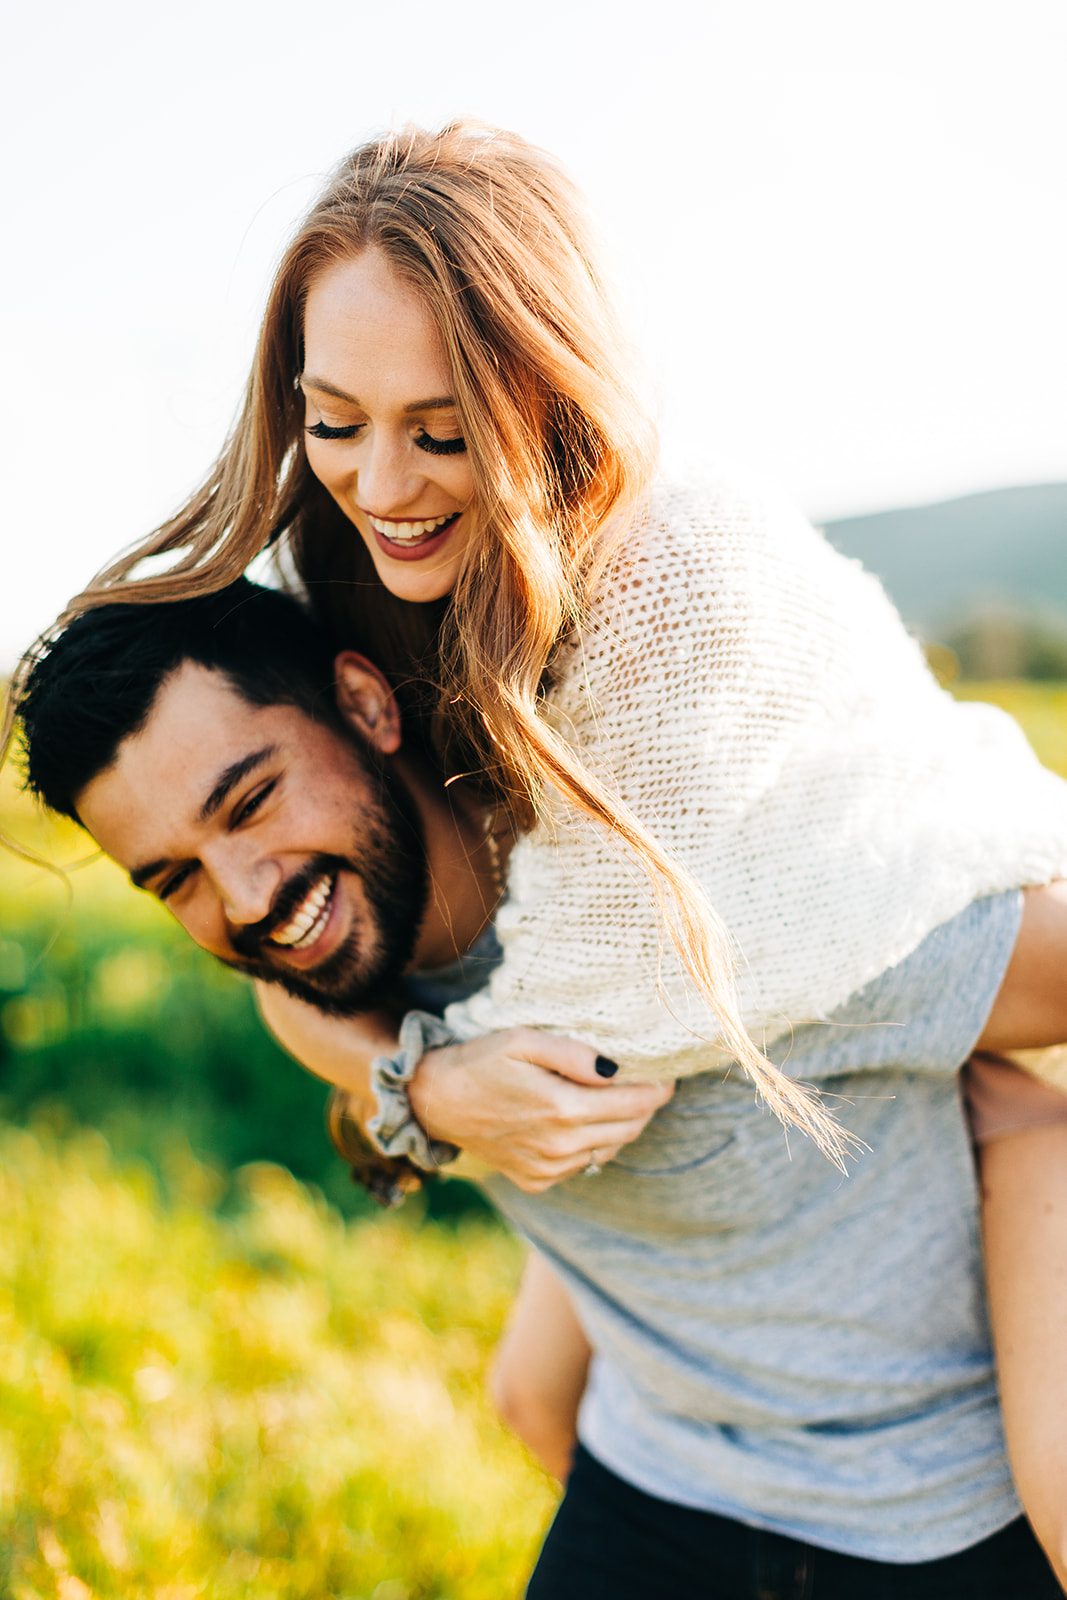 Katie-Yovin_Richard_Superbloom-Engagement-Photos_Clarisse-Rae_Southern-California-Wedding-Photographer-Orange-County-Engagement-Photos-17